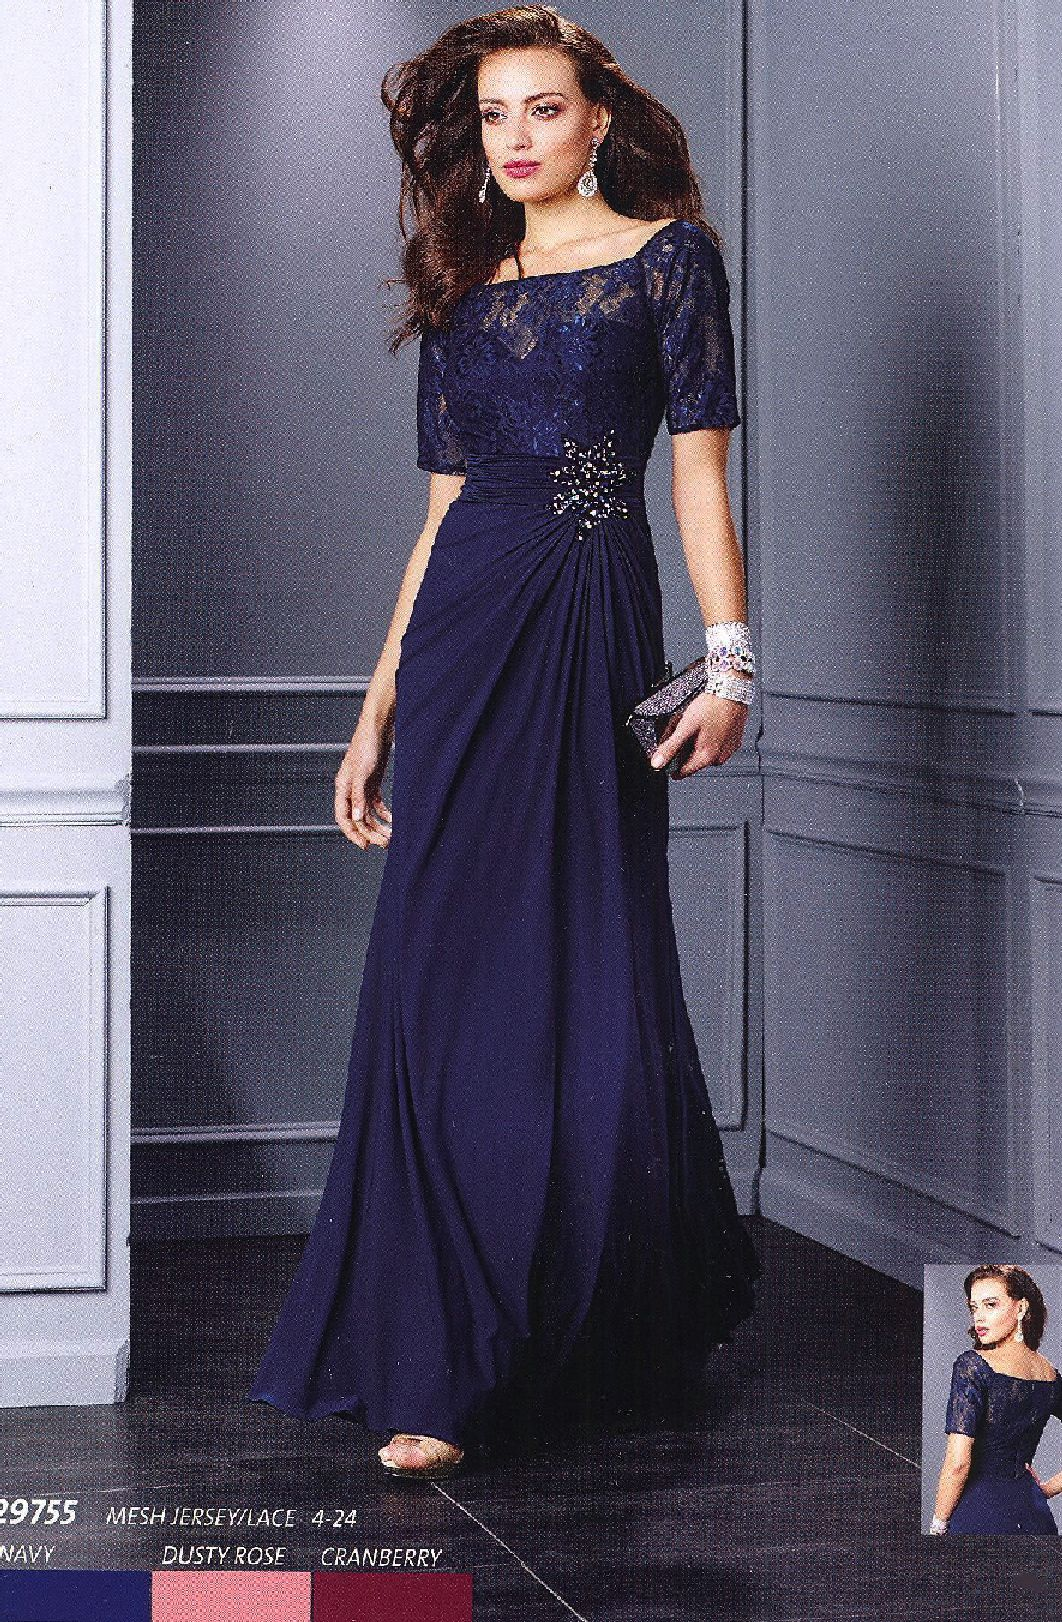 Evening dresses mob dresses by jean de lys for alyce parisbr29755 evening dresses mob dresses by jean de lys for alyce parisbr29755 bridesmaid ombrellifo Gallery